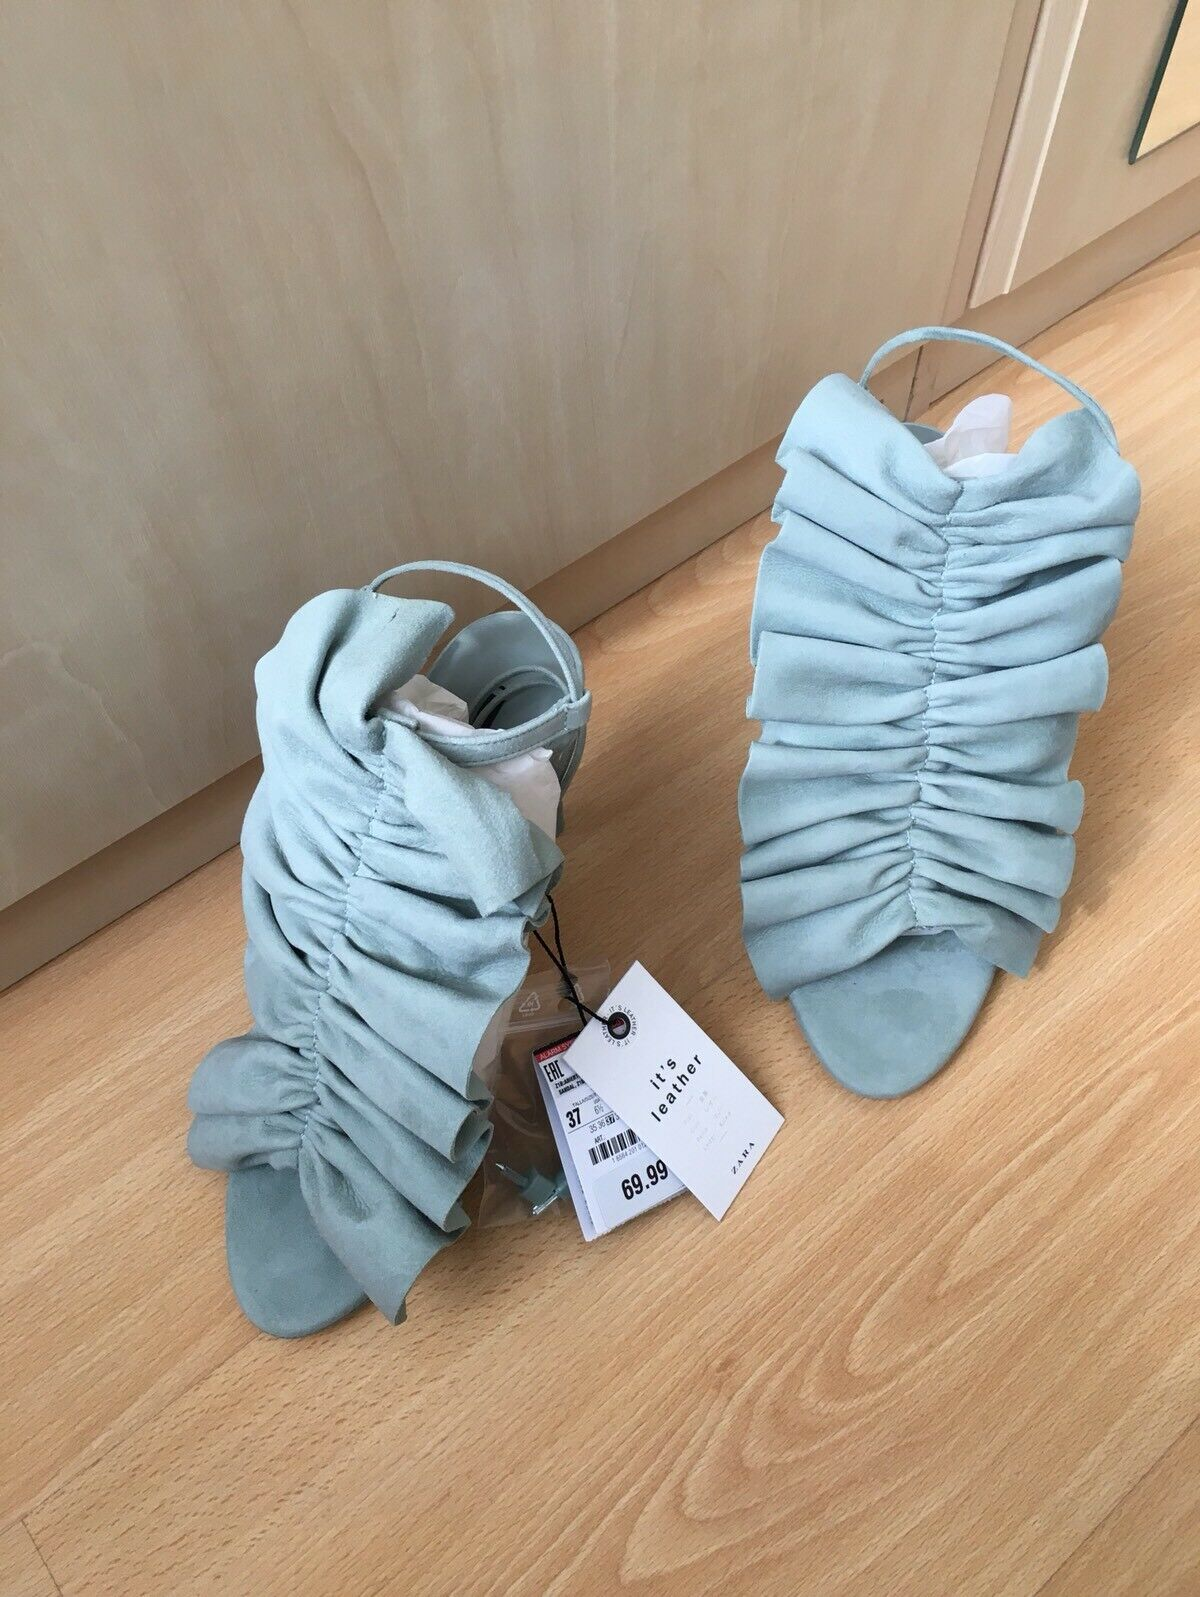 ZARA SKY BLUE SEA GREEN RUFFLED ANKLE LACE UP HIGH HEEL SHOES SANDALS UK 4 BNWT